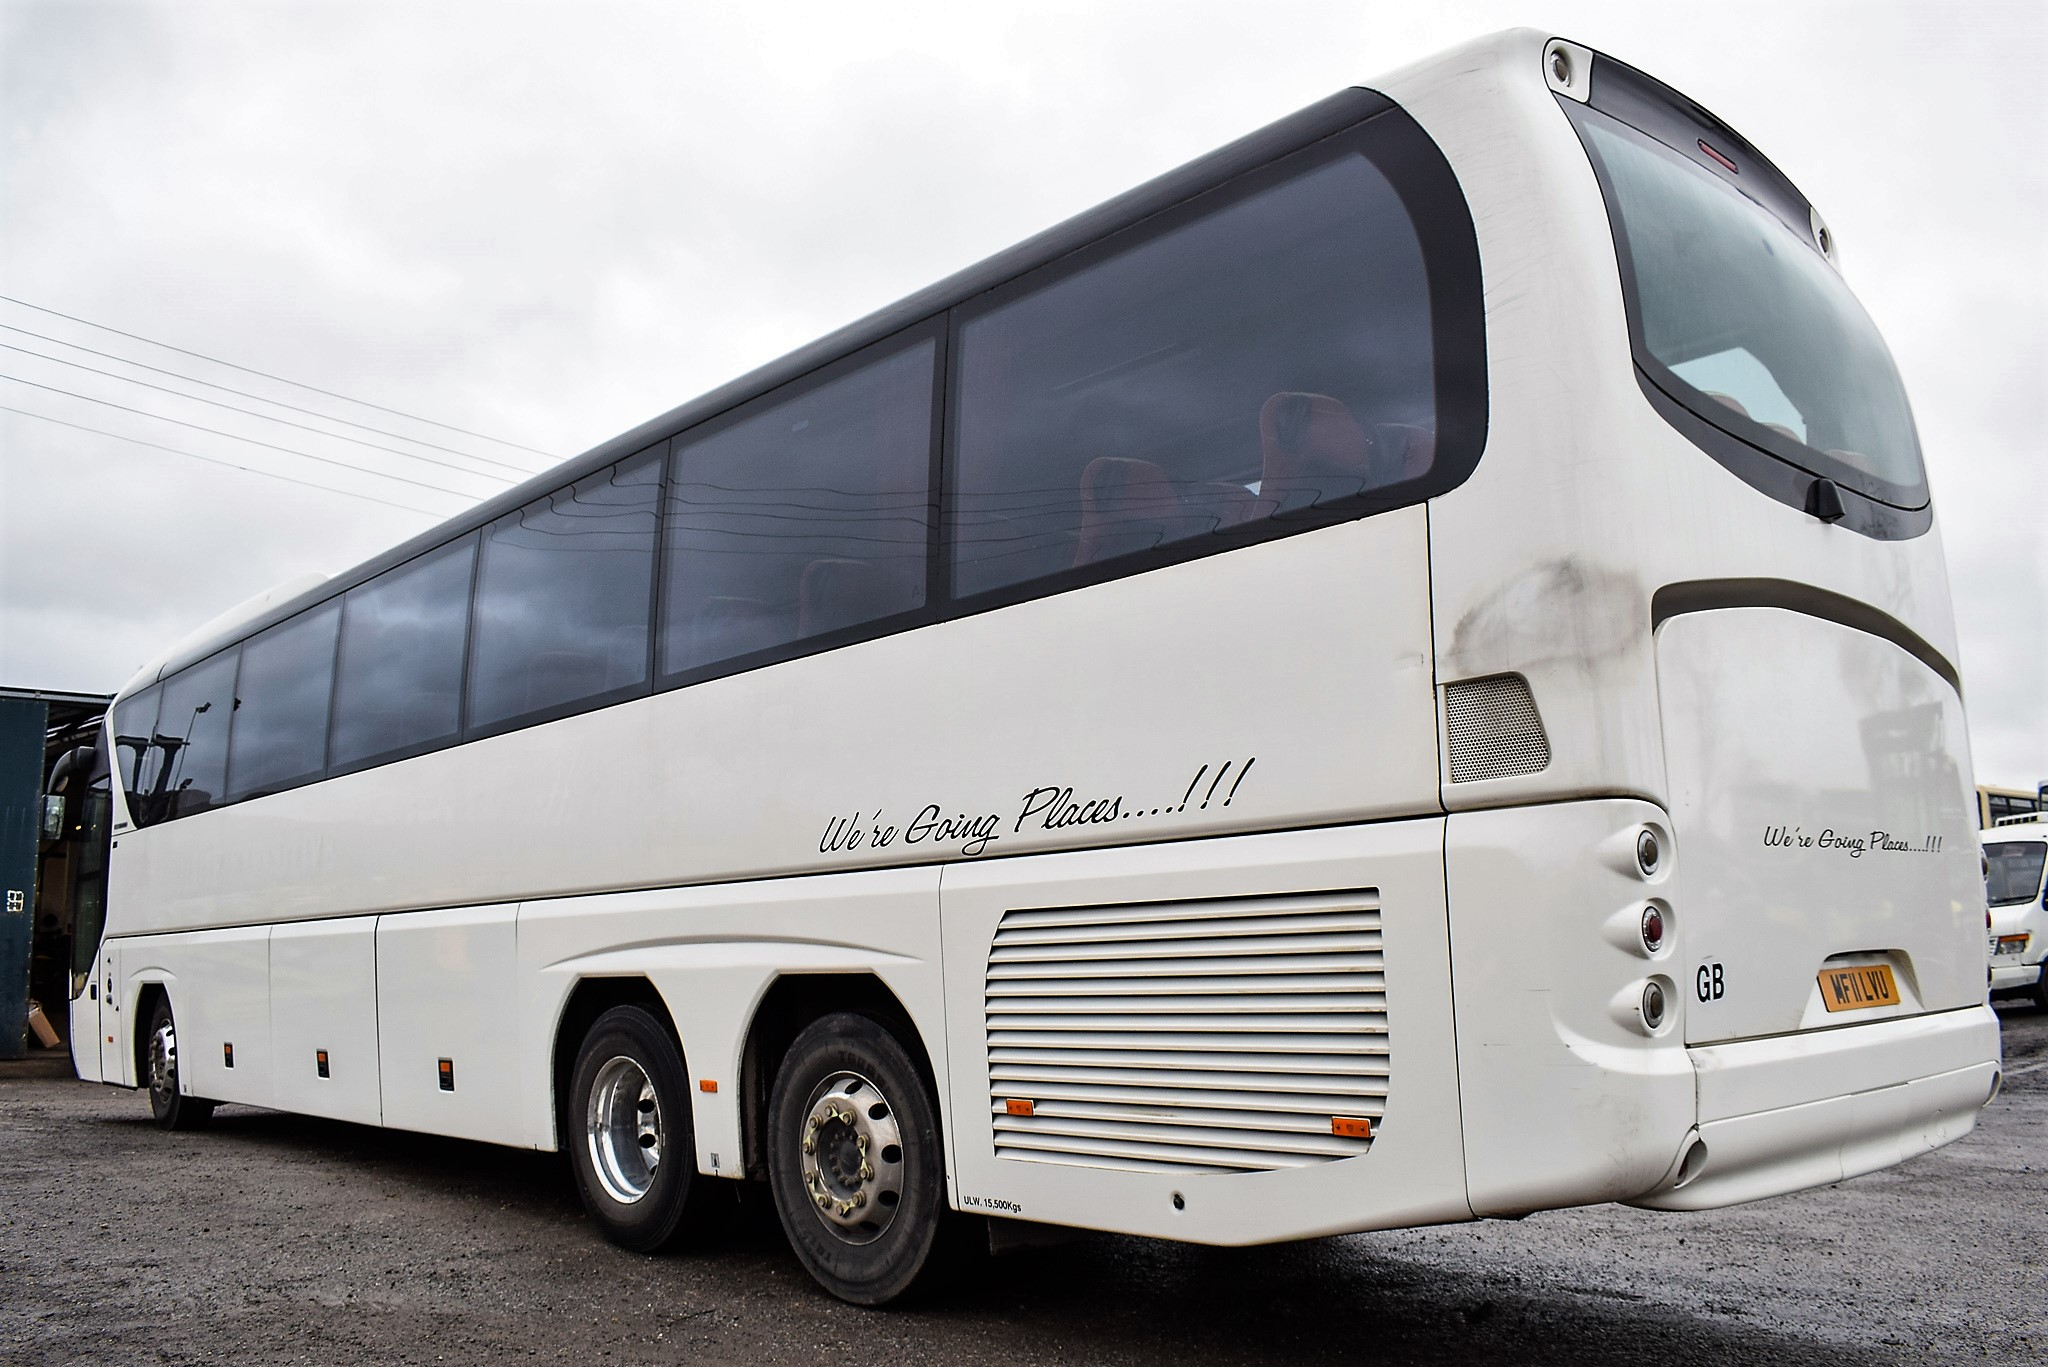 Lot 16A - Neoplan Tourliner 61 seat luxury coach Registration Number: MF11 LVU Date of Registration: 01/04/